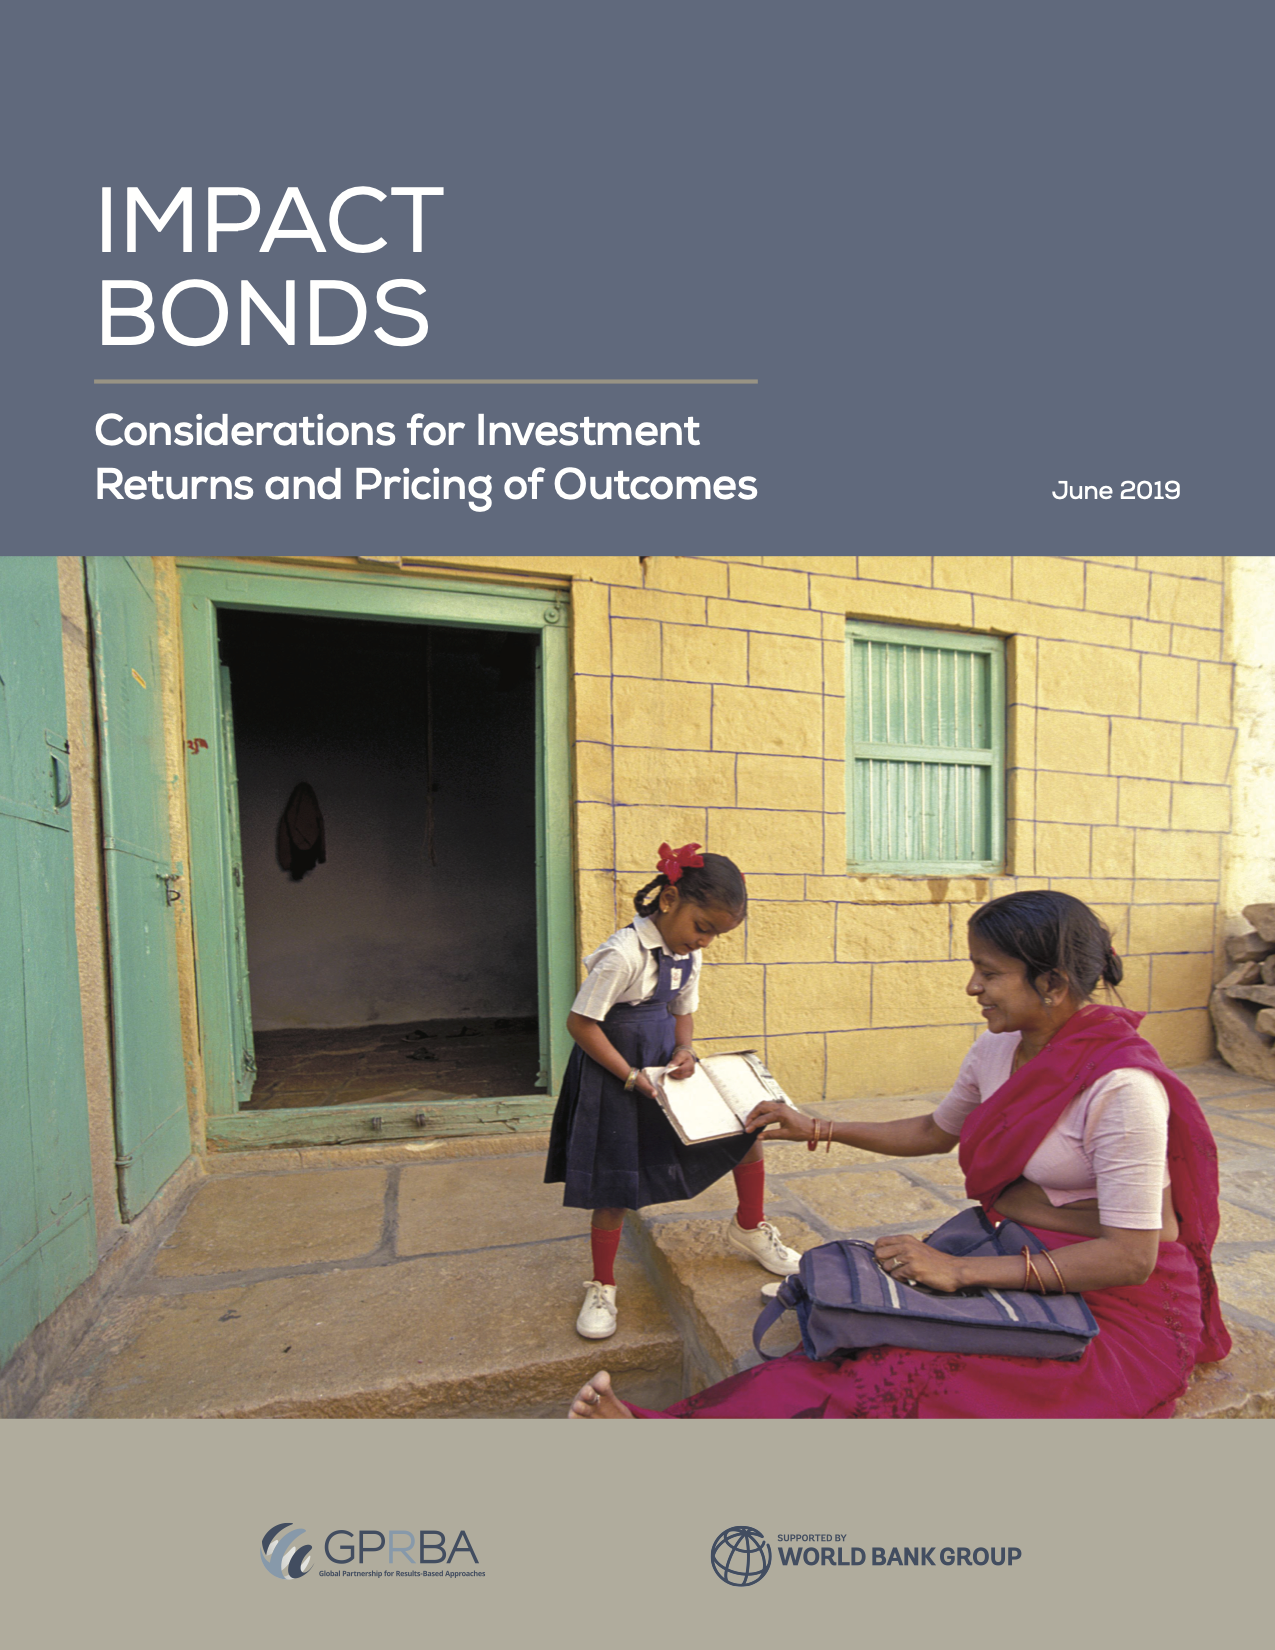 Impact Bonds: Considerations for Investment Returns and Pricing of Outcomes